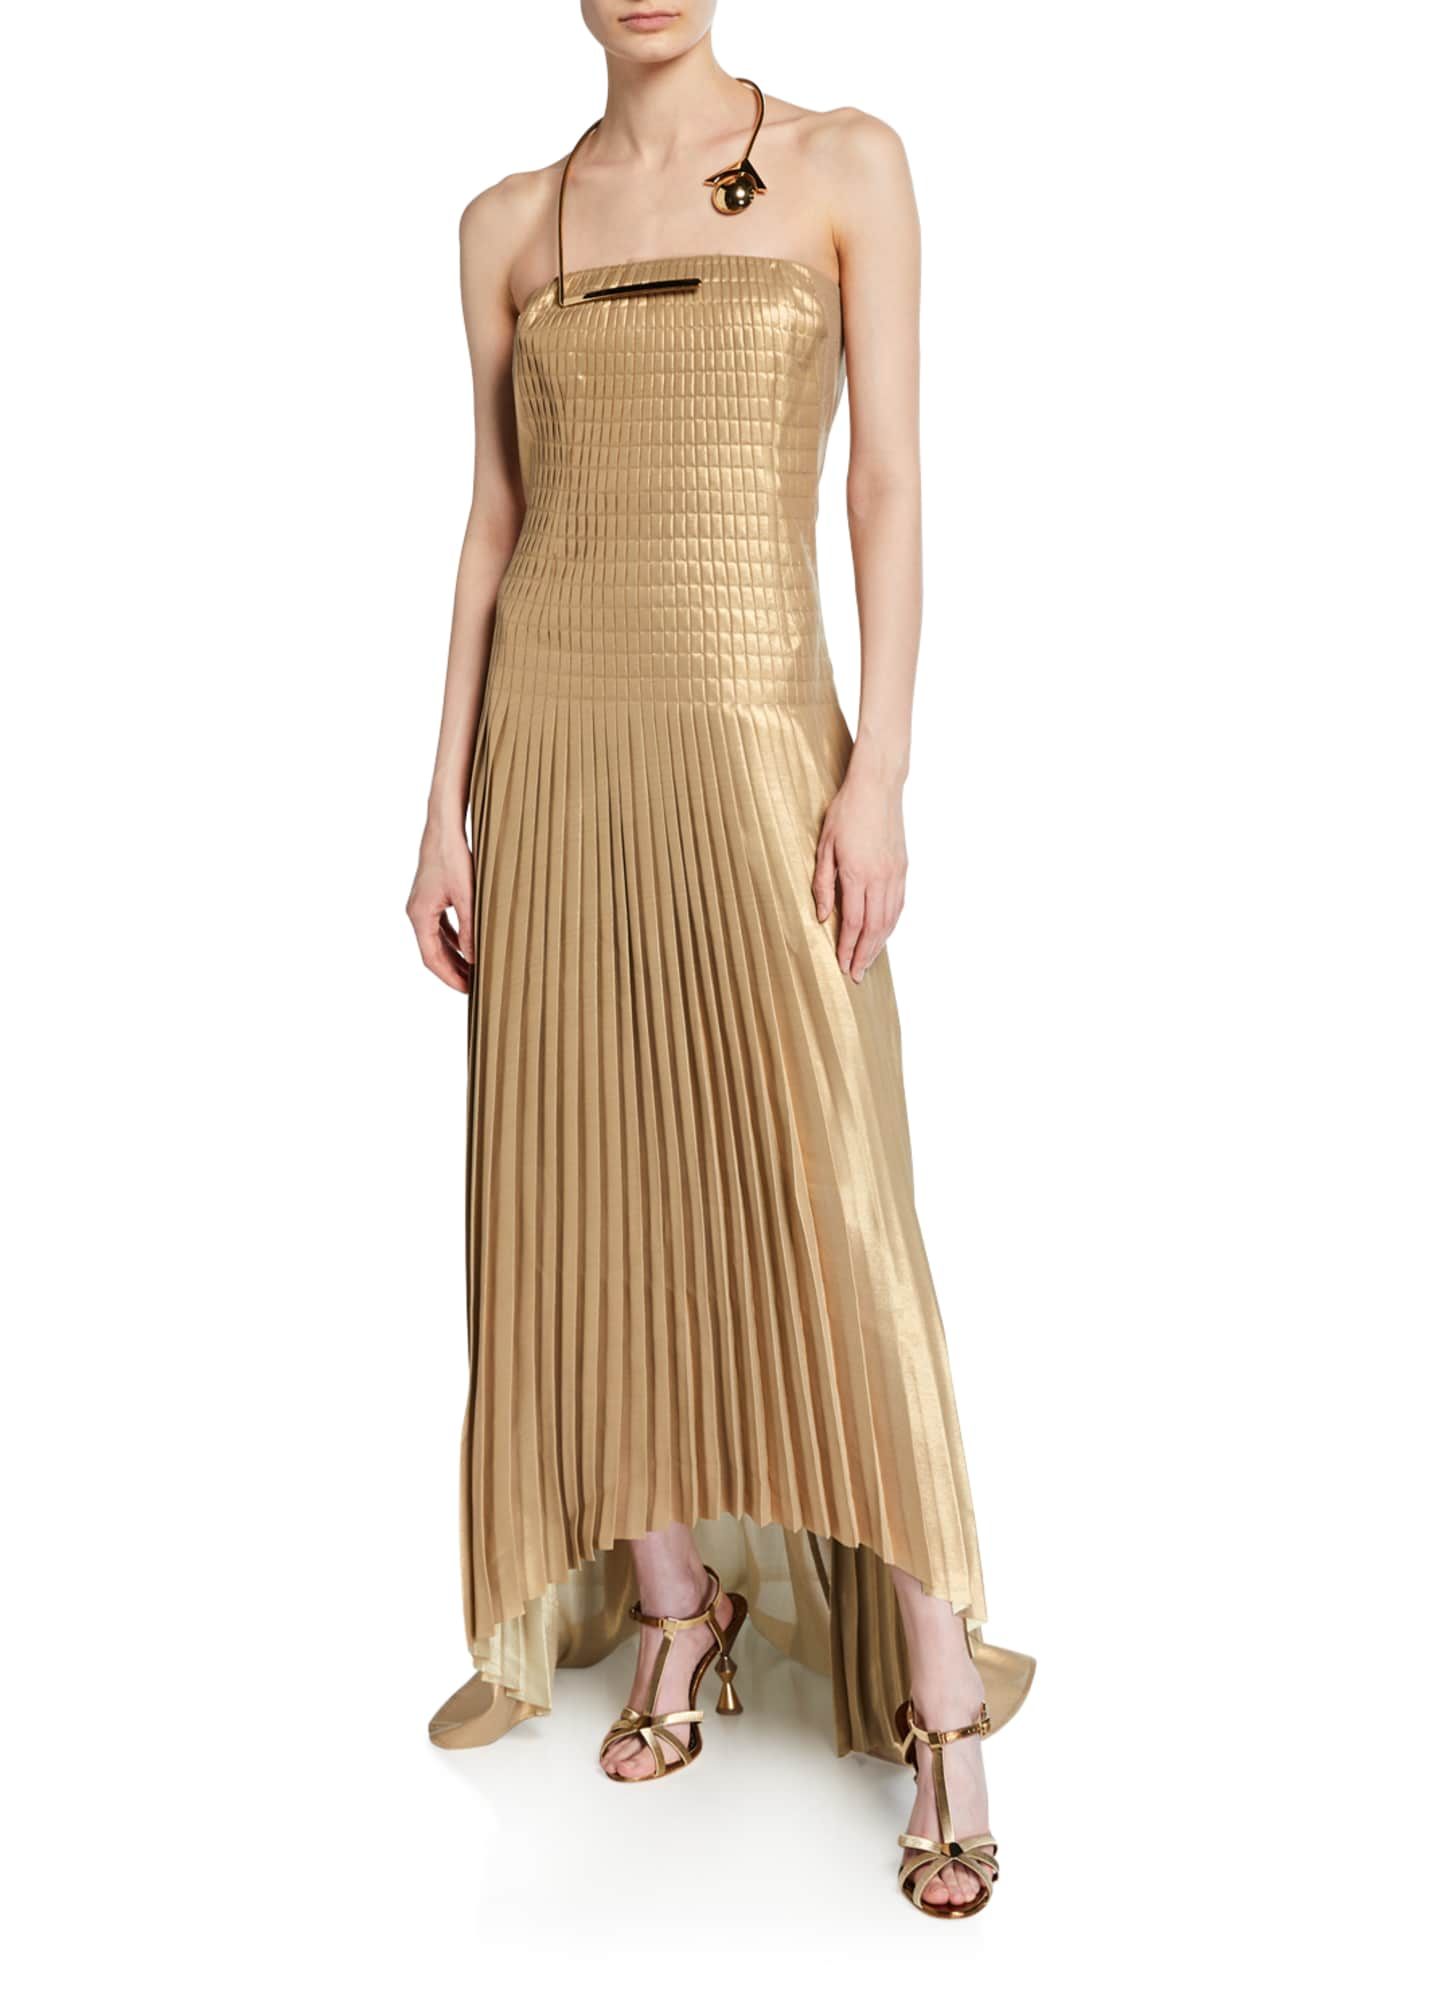 Akris Pleated Strapless Gown with Golden Necklace